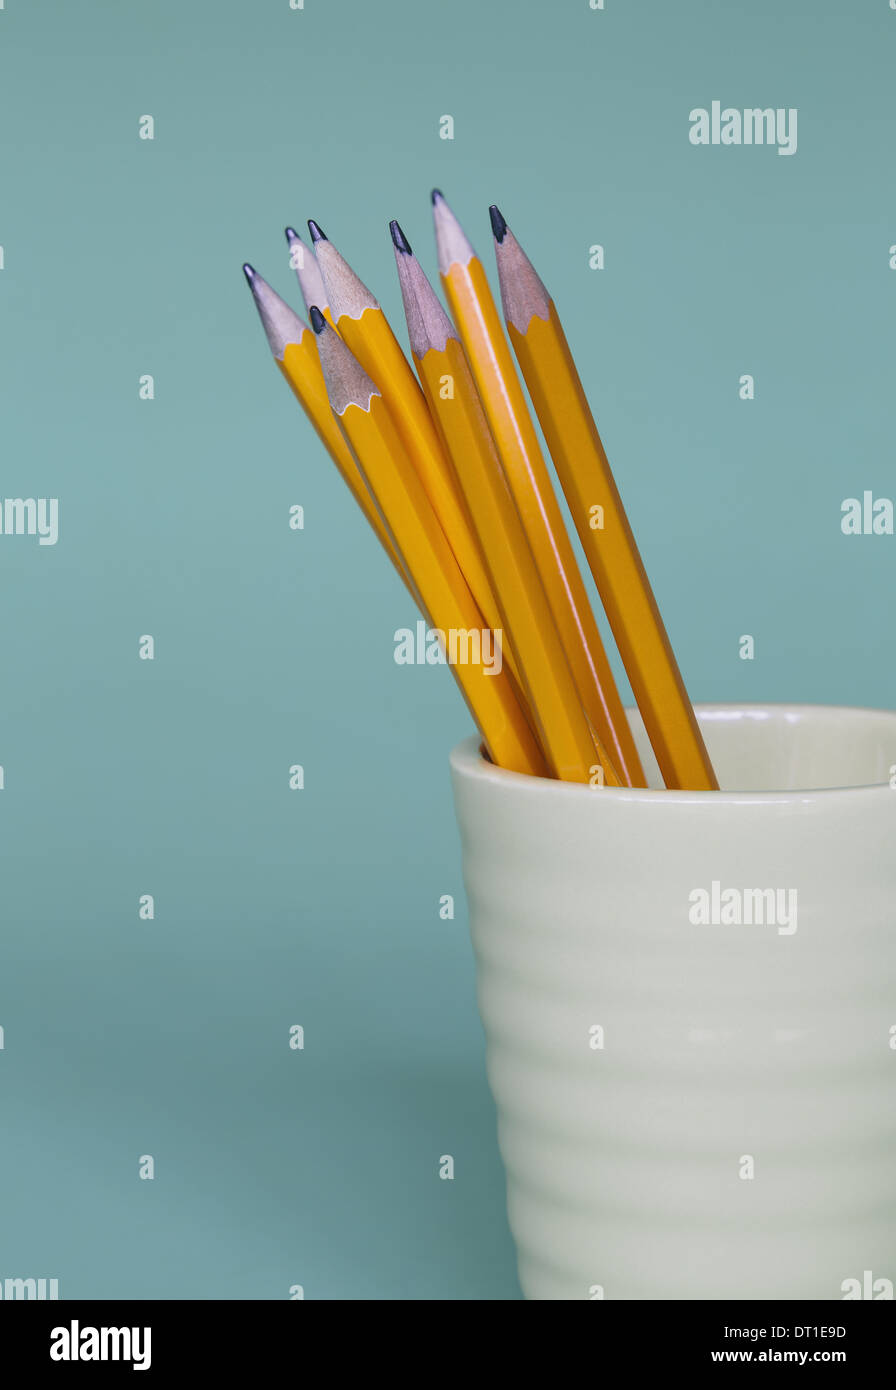 Sharpened pencils dans tasse sur fond bleu Photo Stock